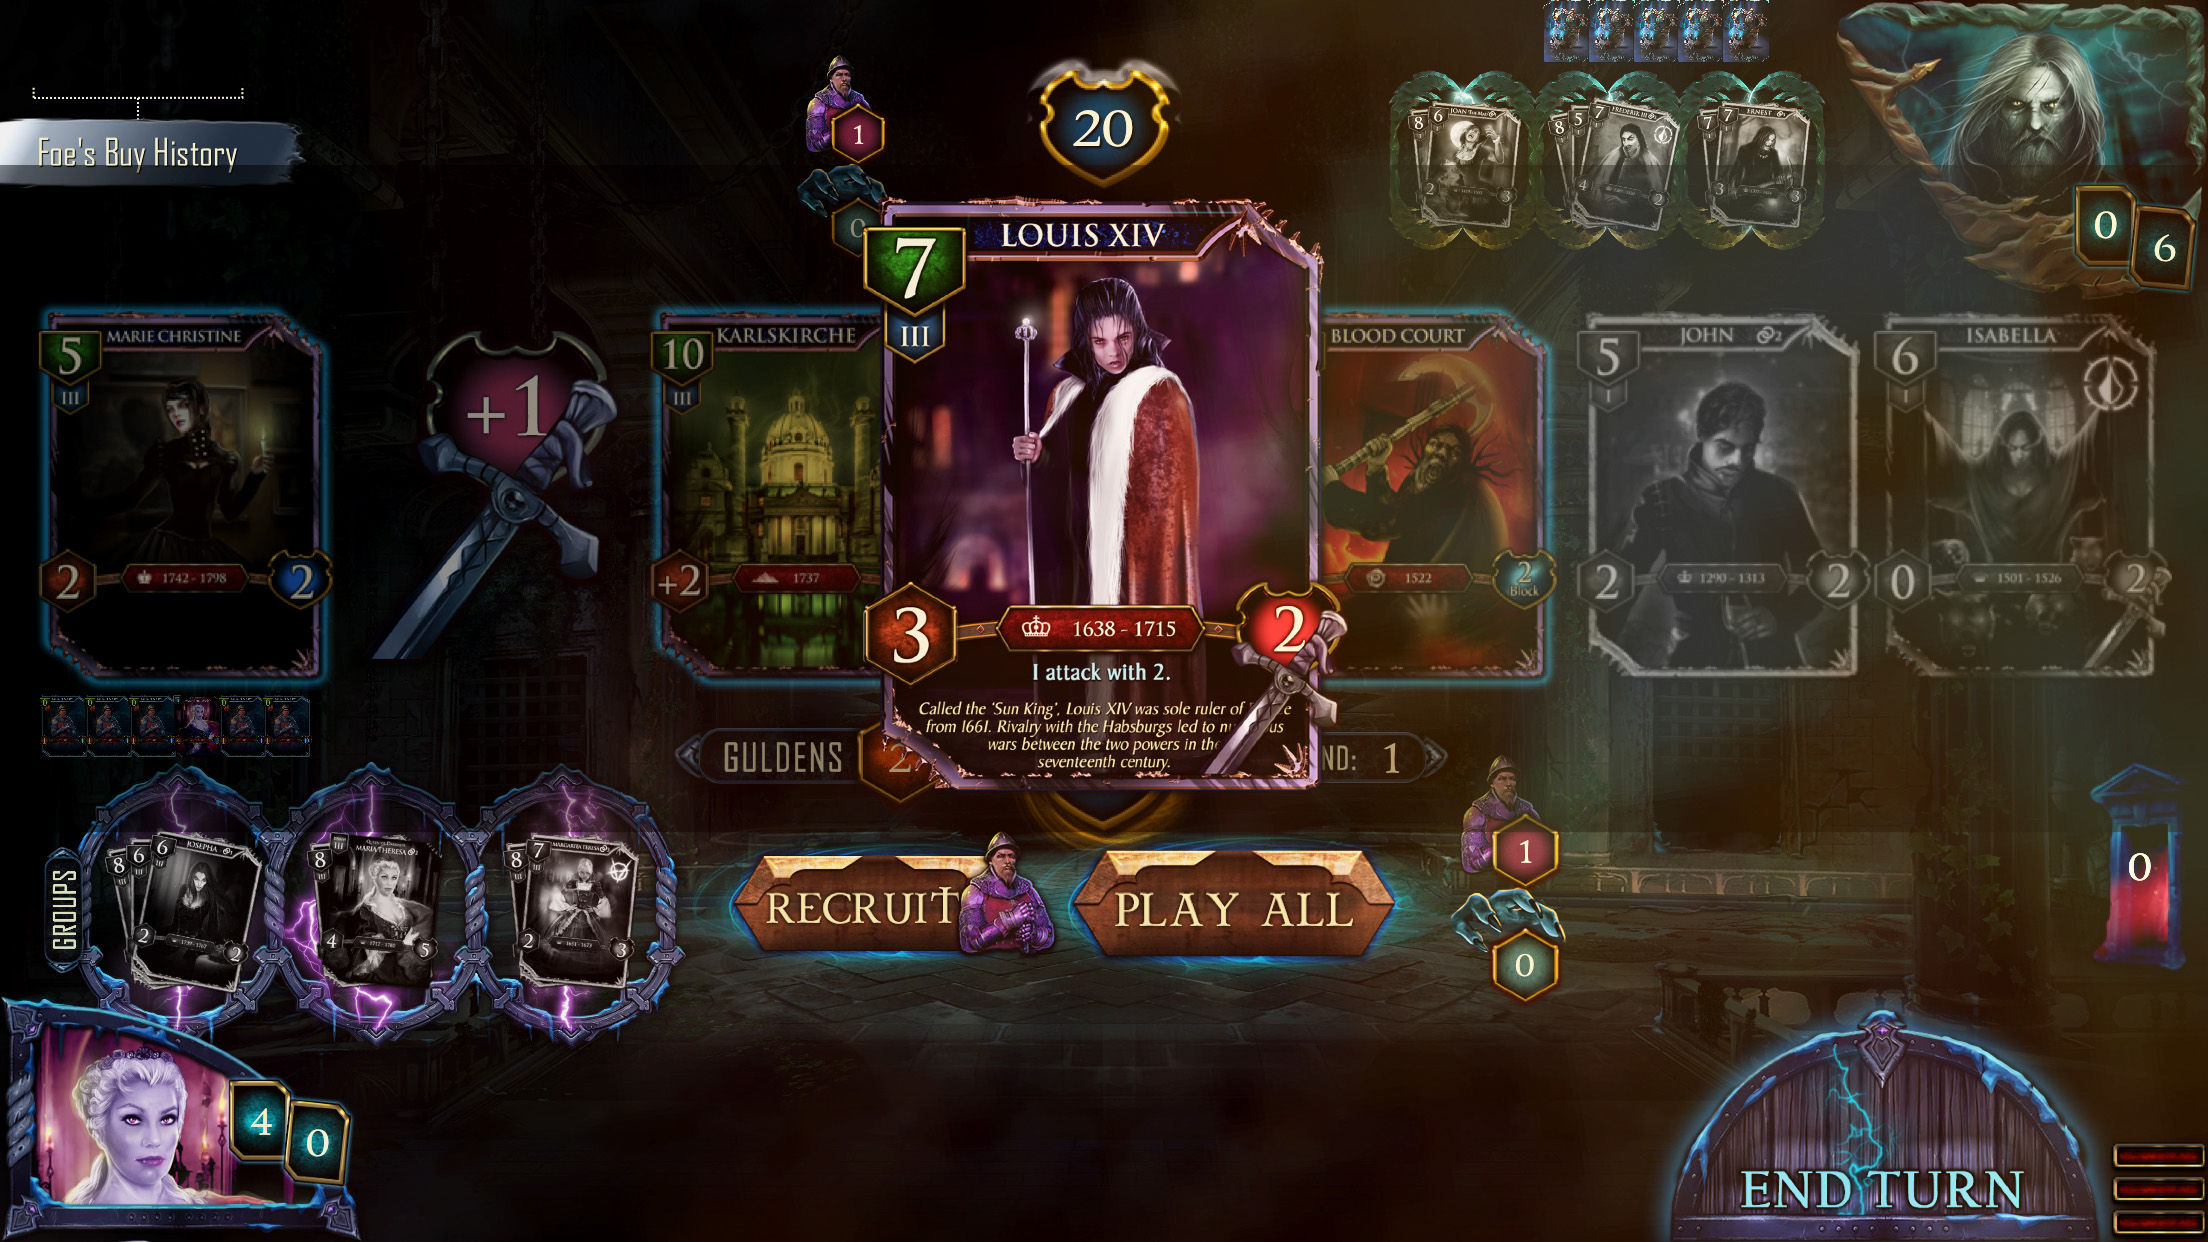 VEmpire - The Kings of Darkness might be worth another look at its current low price